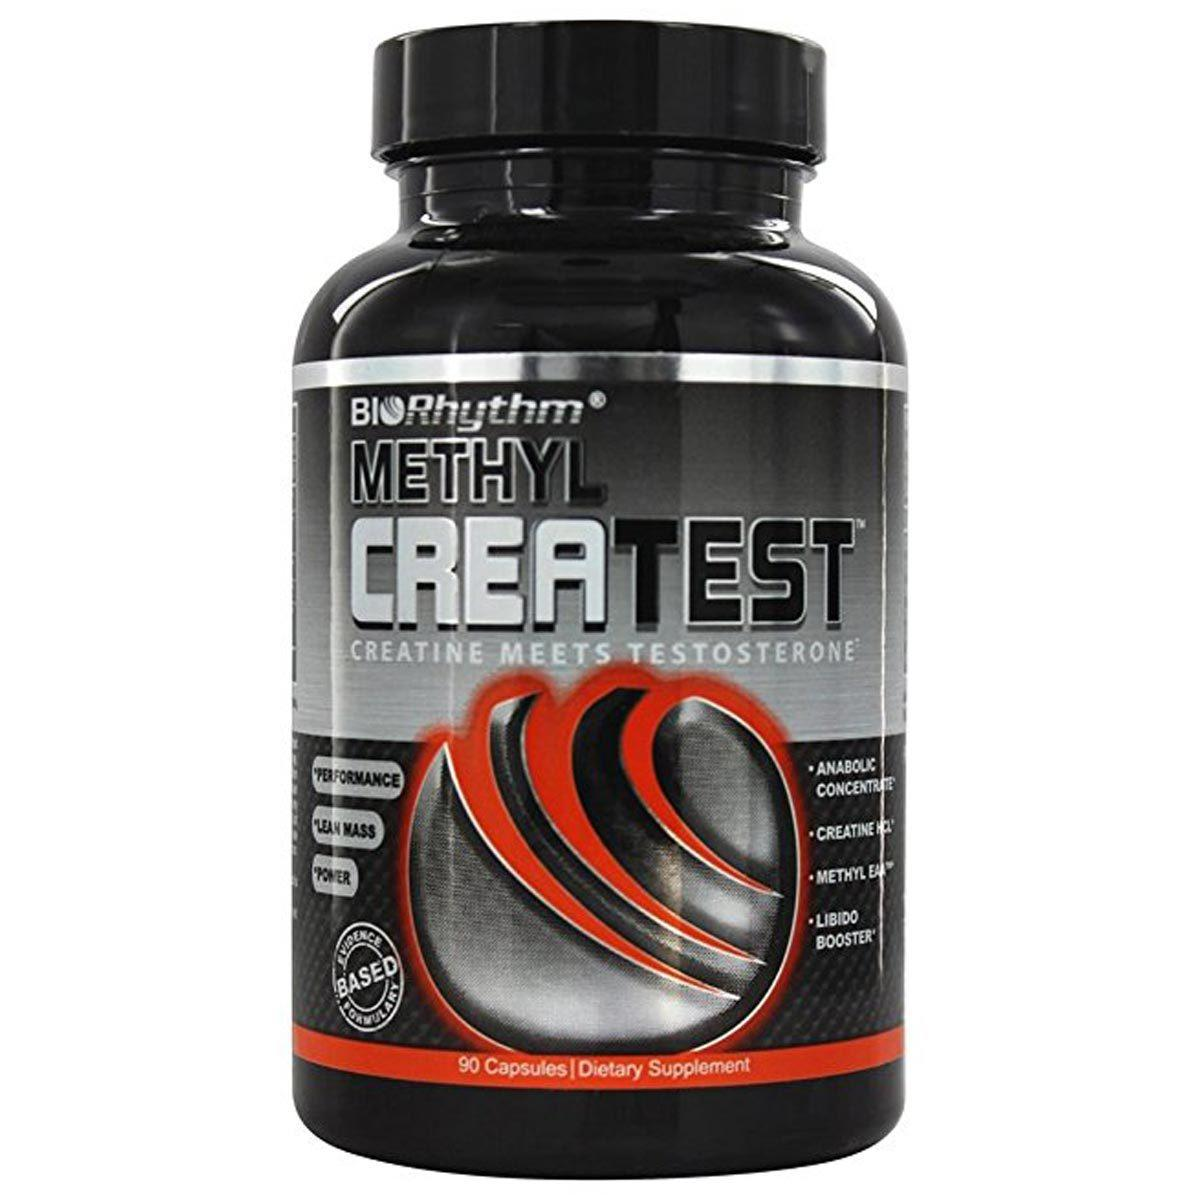 BioRhythm Methyl Createst 120 Caps Creatine BioRhythm  (1059193225259)